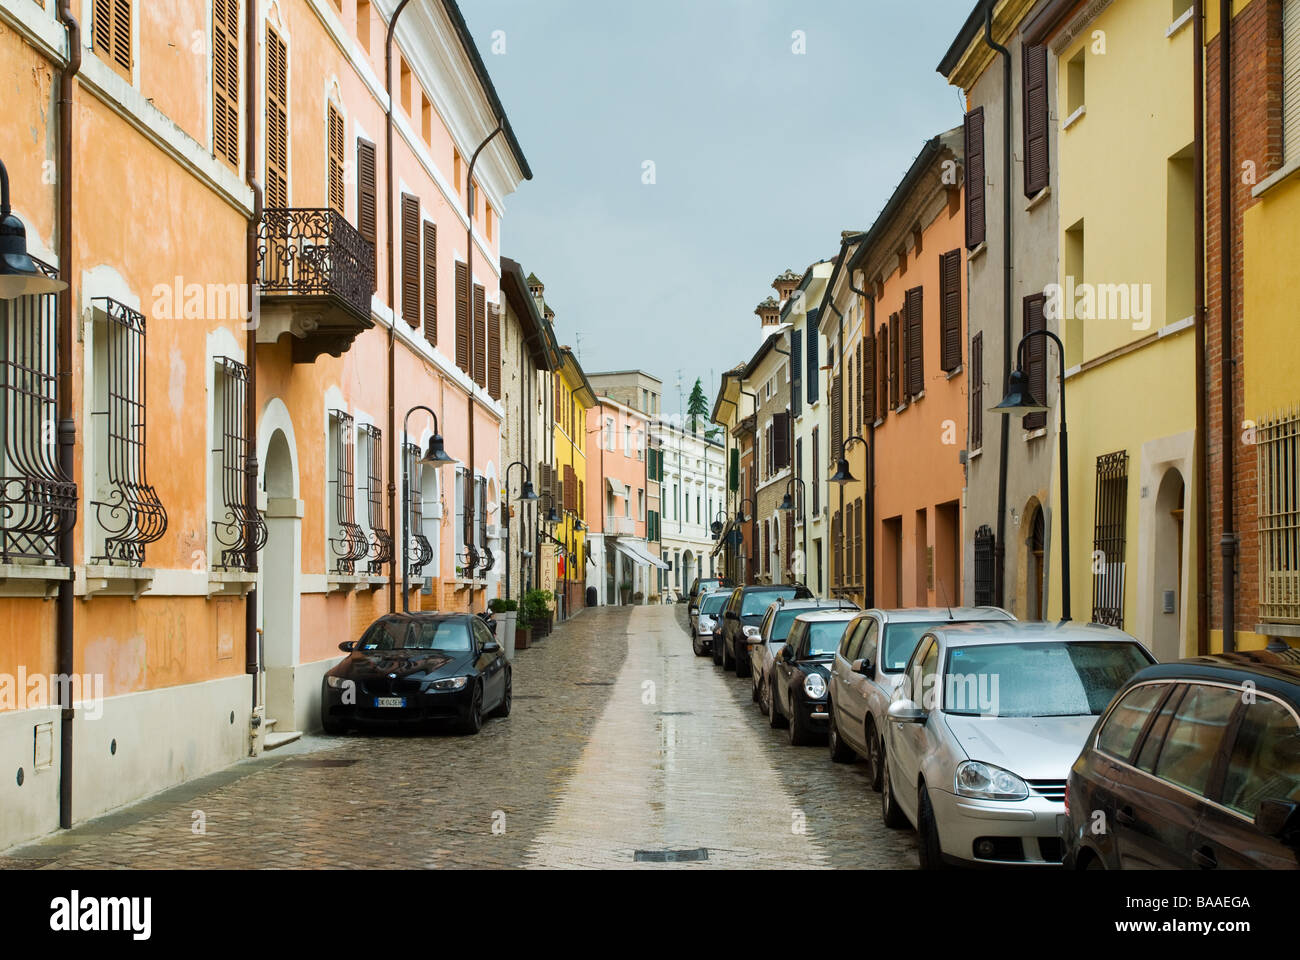 photograph of colourful italian street in ravenna with parked cars - Stock Image